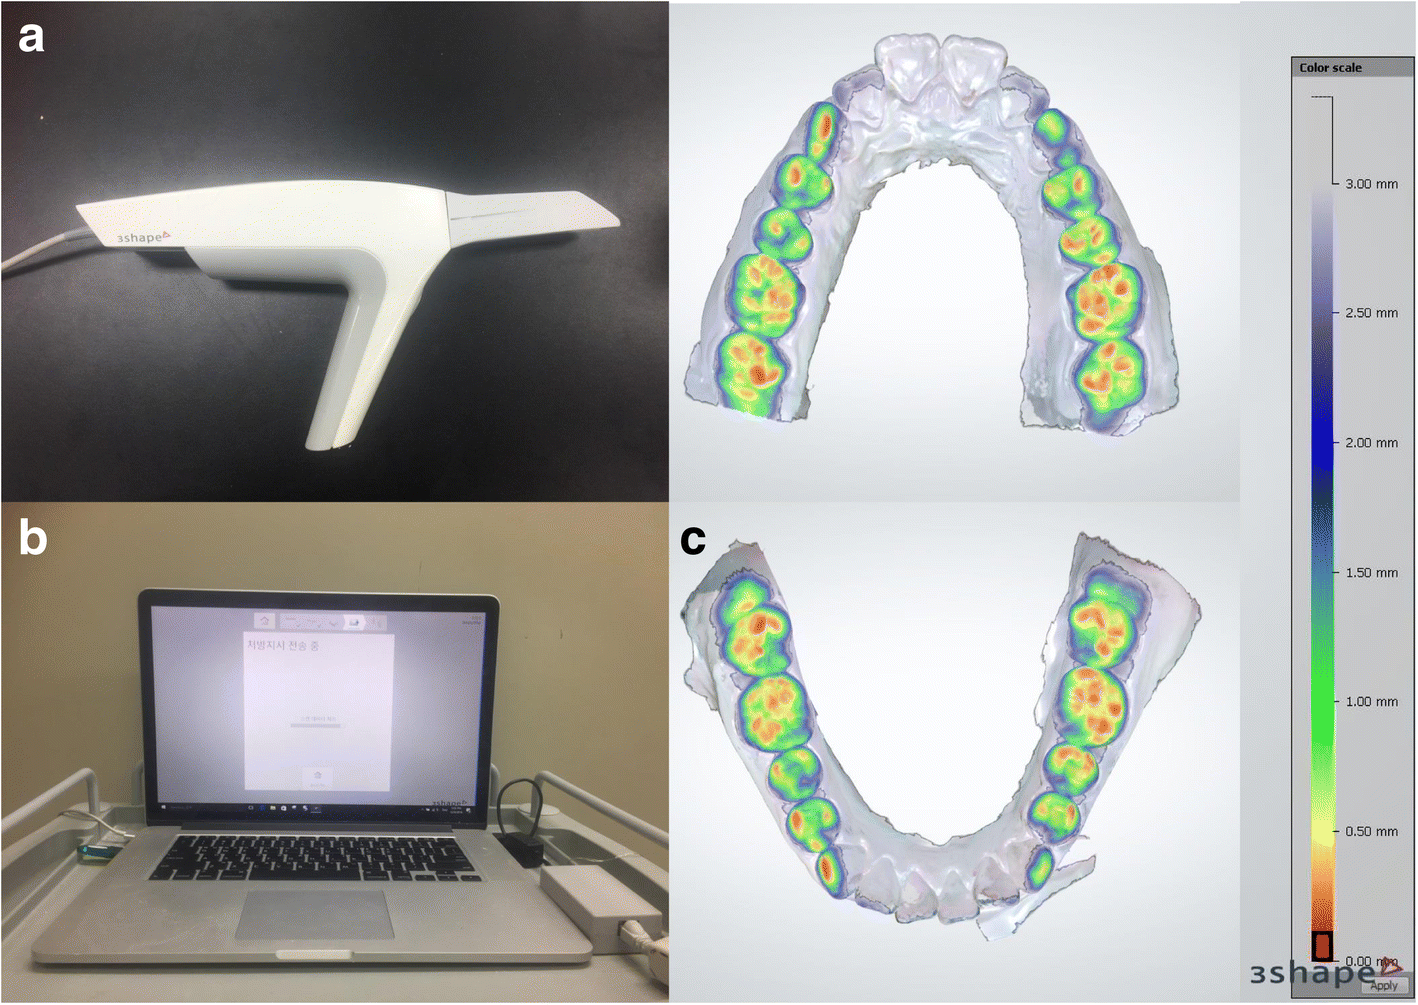 Comparison of the occlusal contact area of virtual models